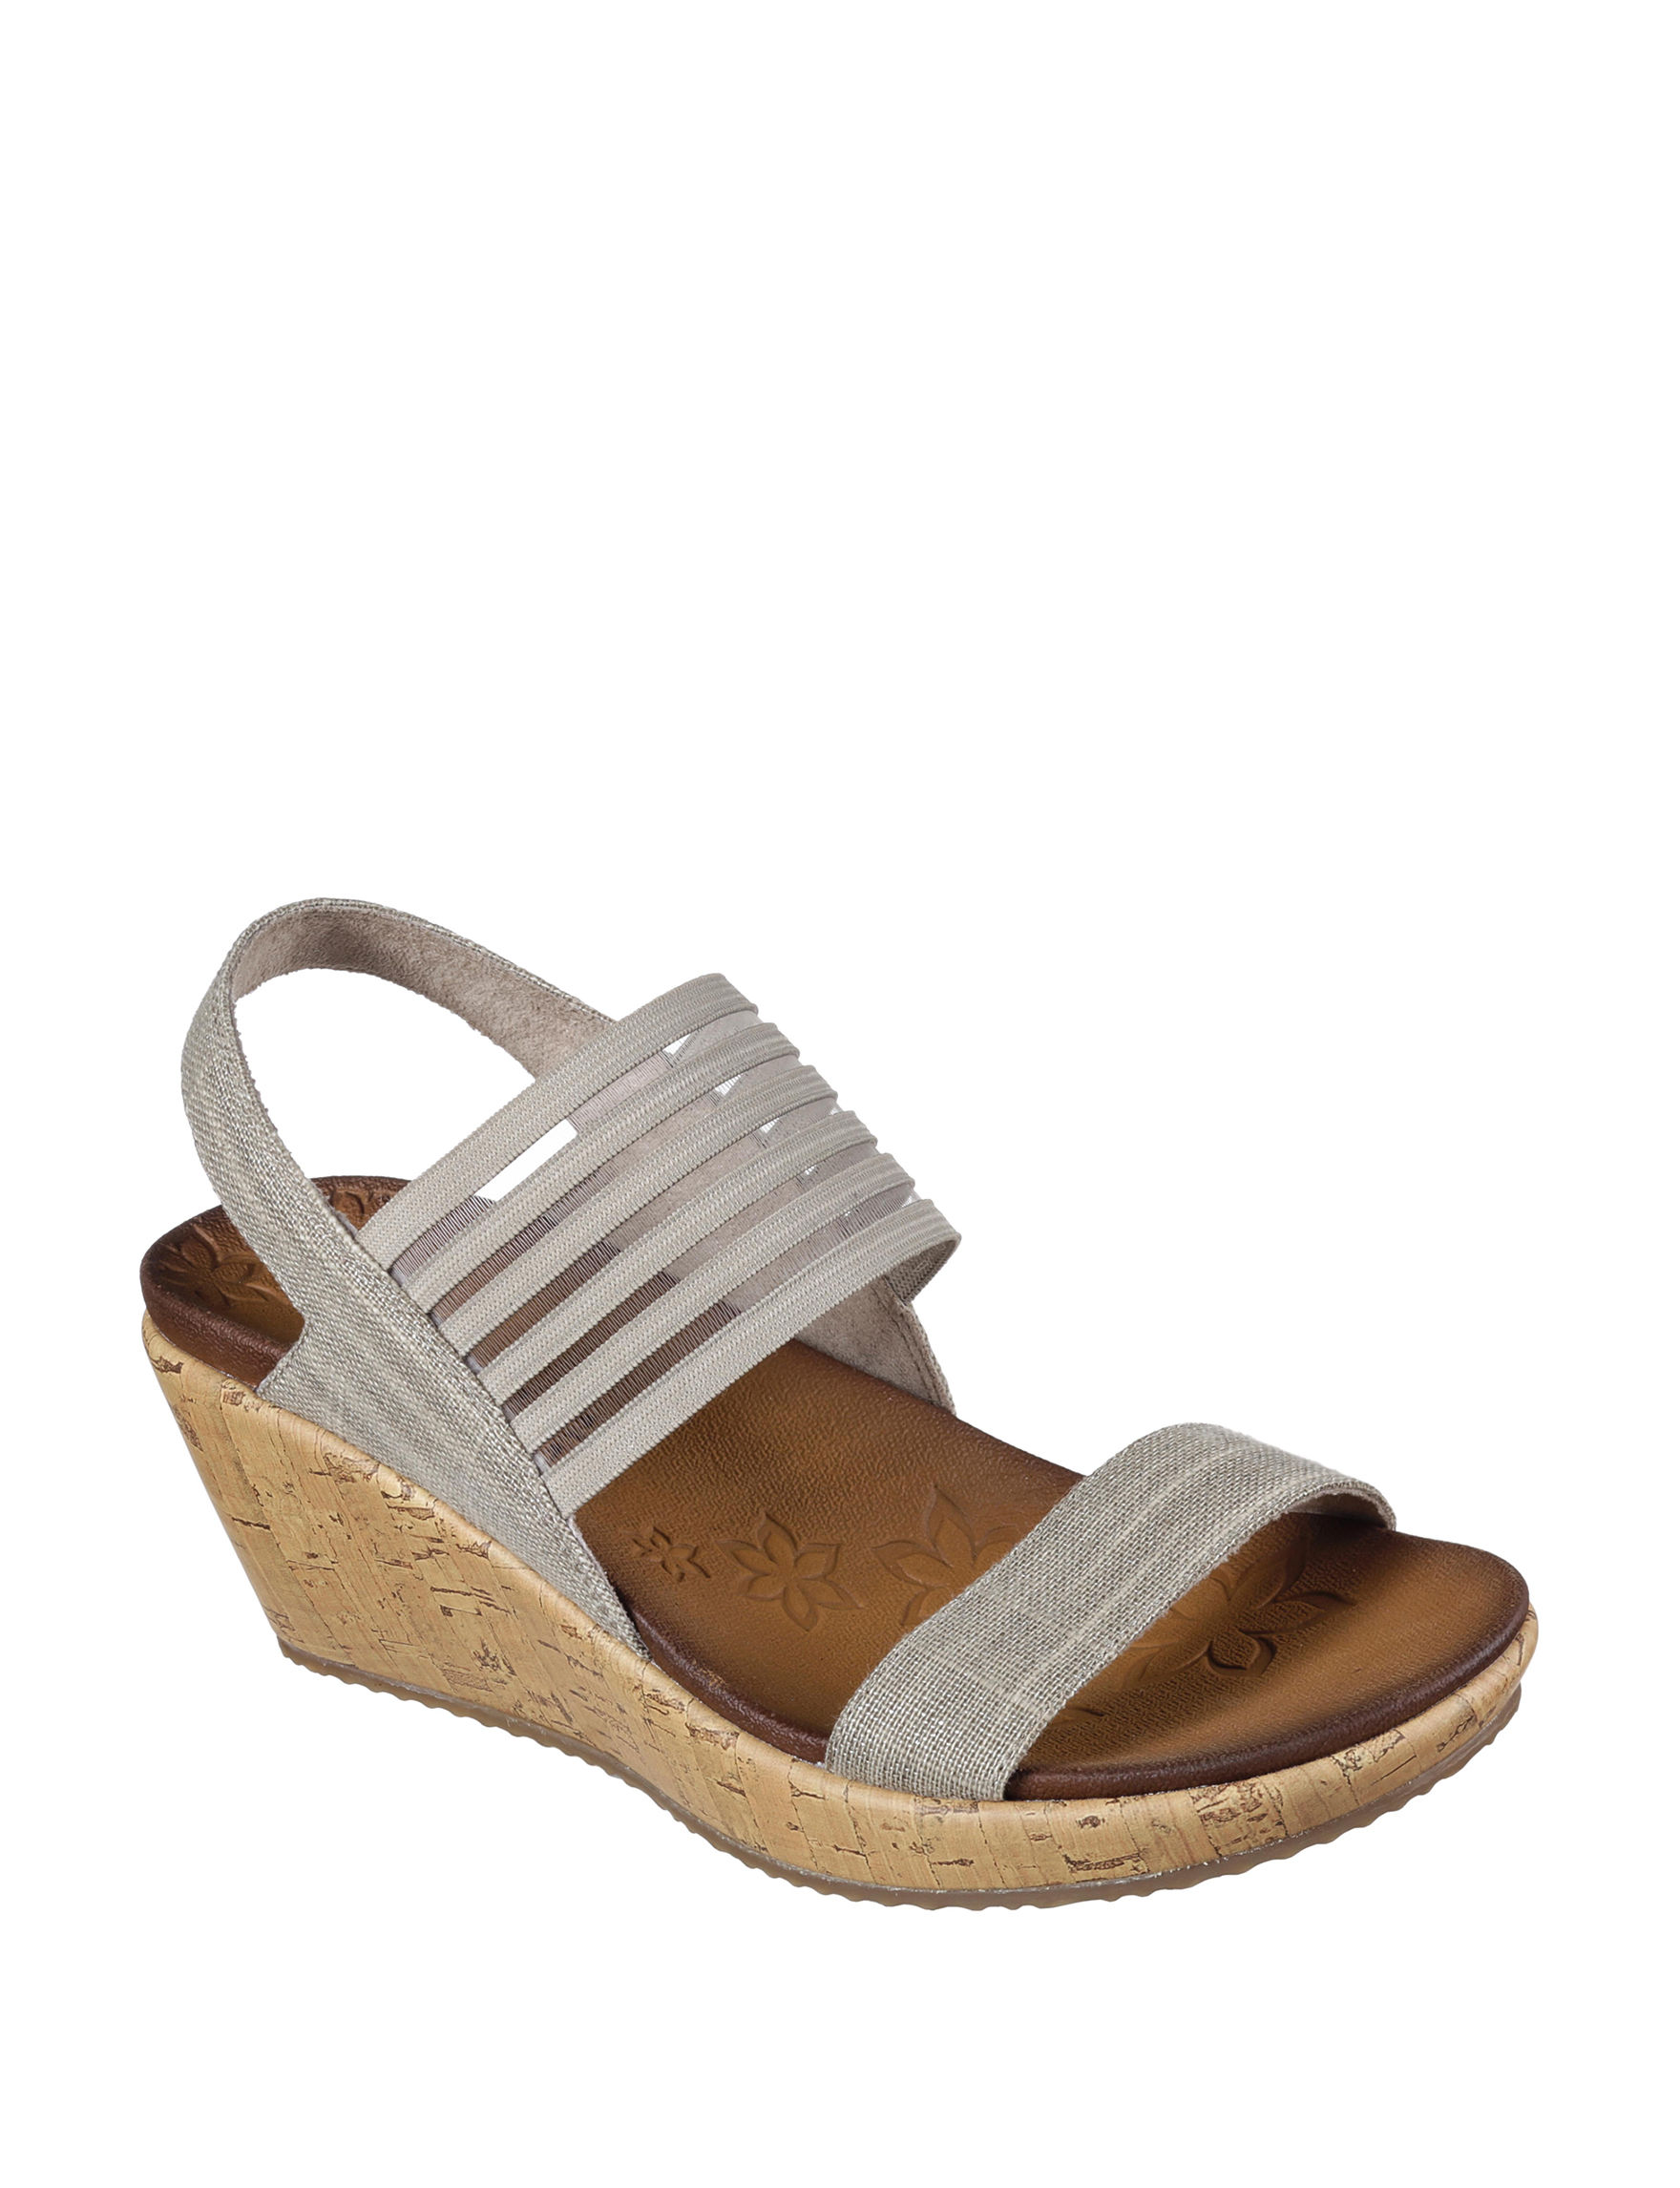 Skechers Taupe Wedge Sandals